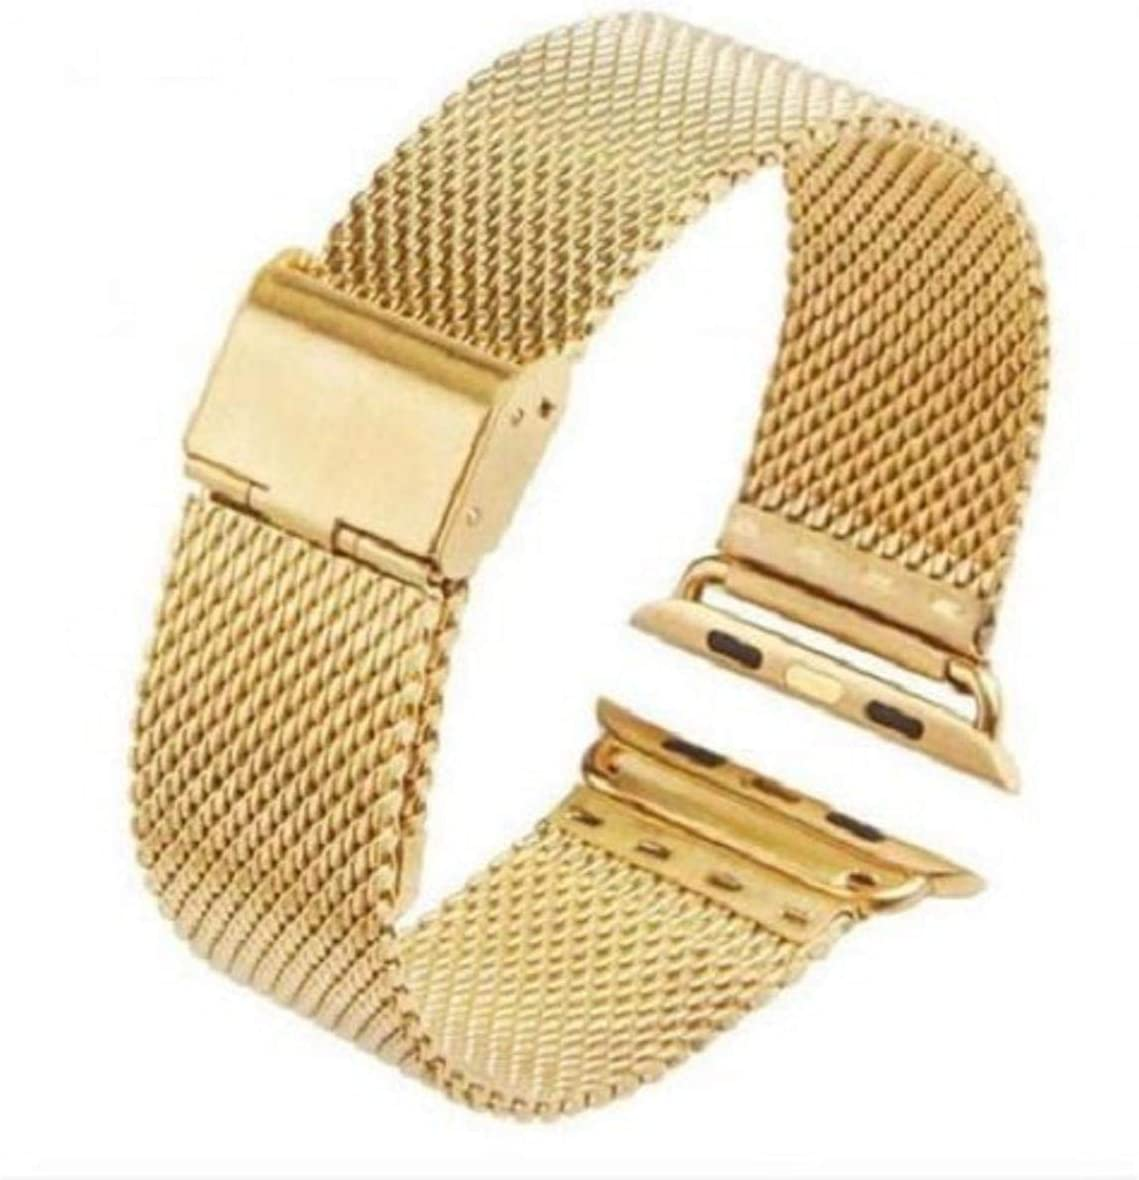 iPM Stainless Steel Mesh Milanese Loop Band for Apple Watch 38mm - Gold